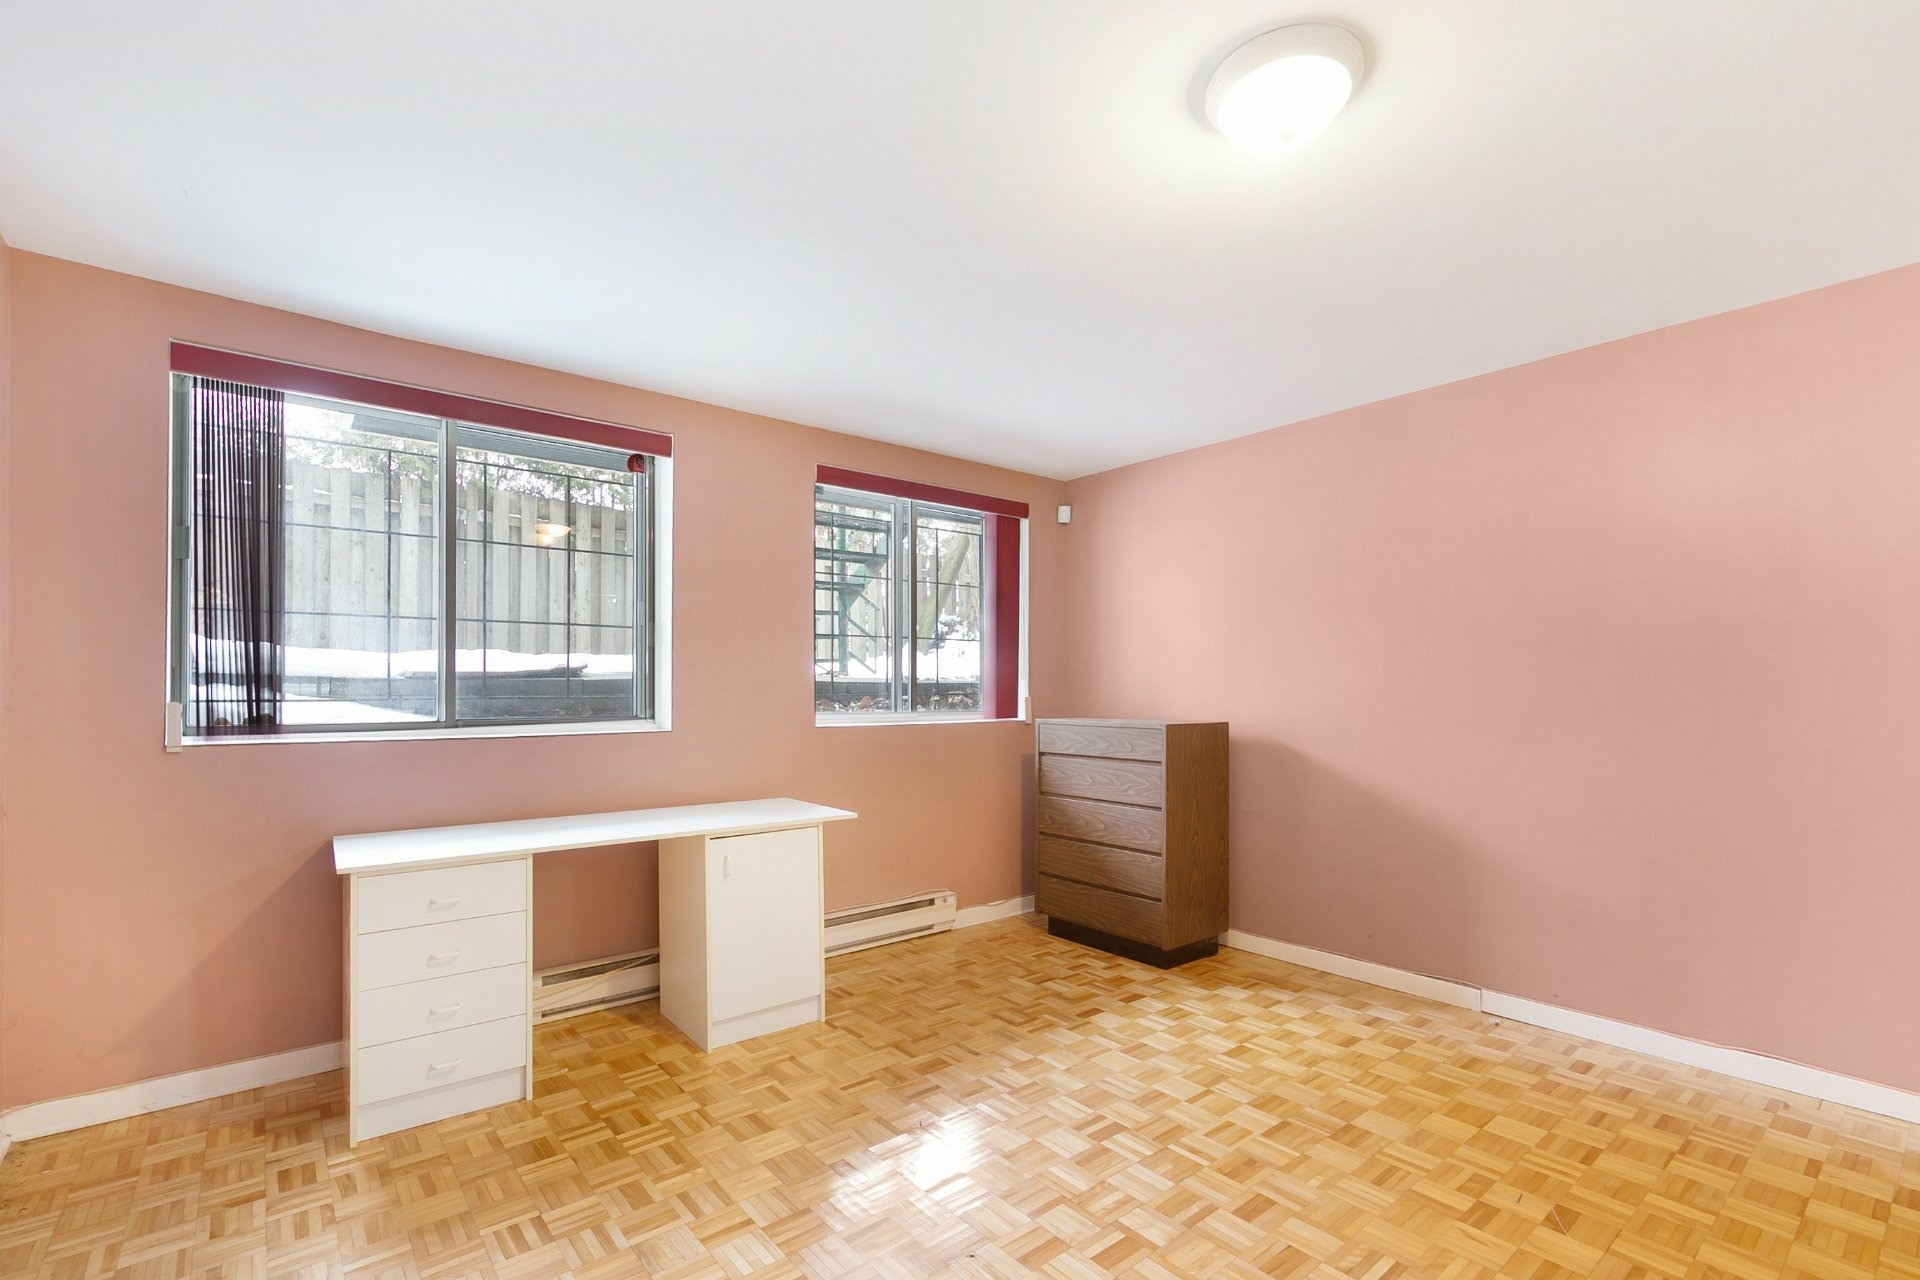 image 7 - Apartment For sale Ville-Marie Montréal  - 5 rooms